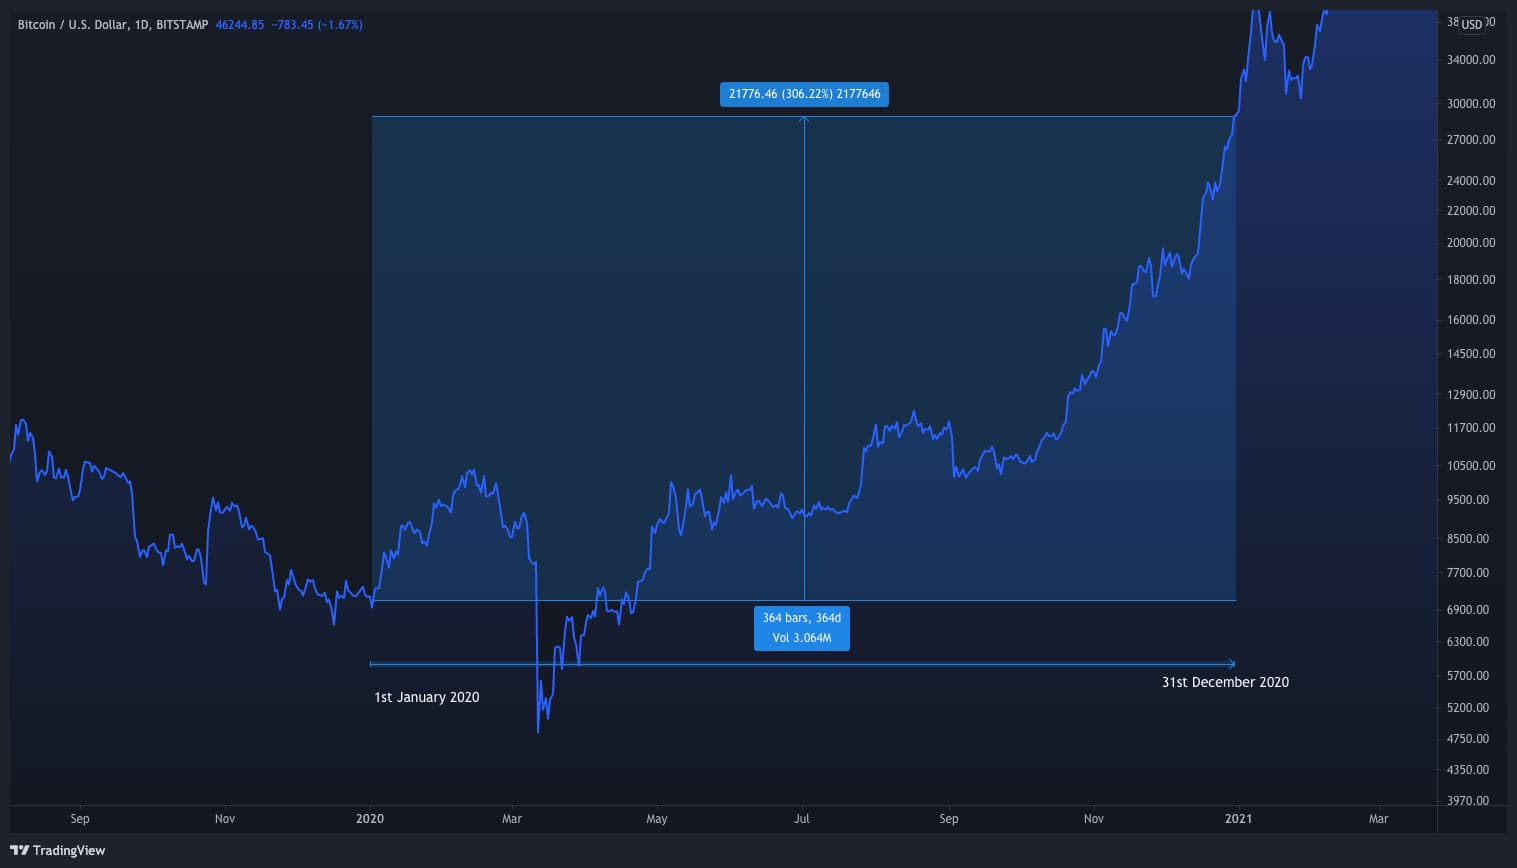 Chart of Bitcoin Price showing the growth in 2020